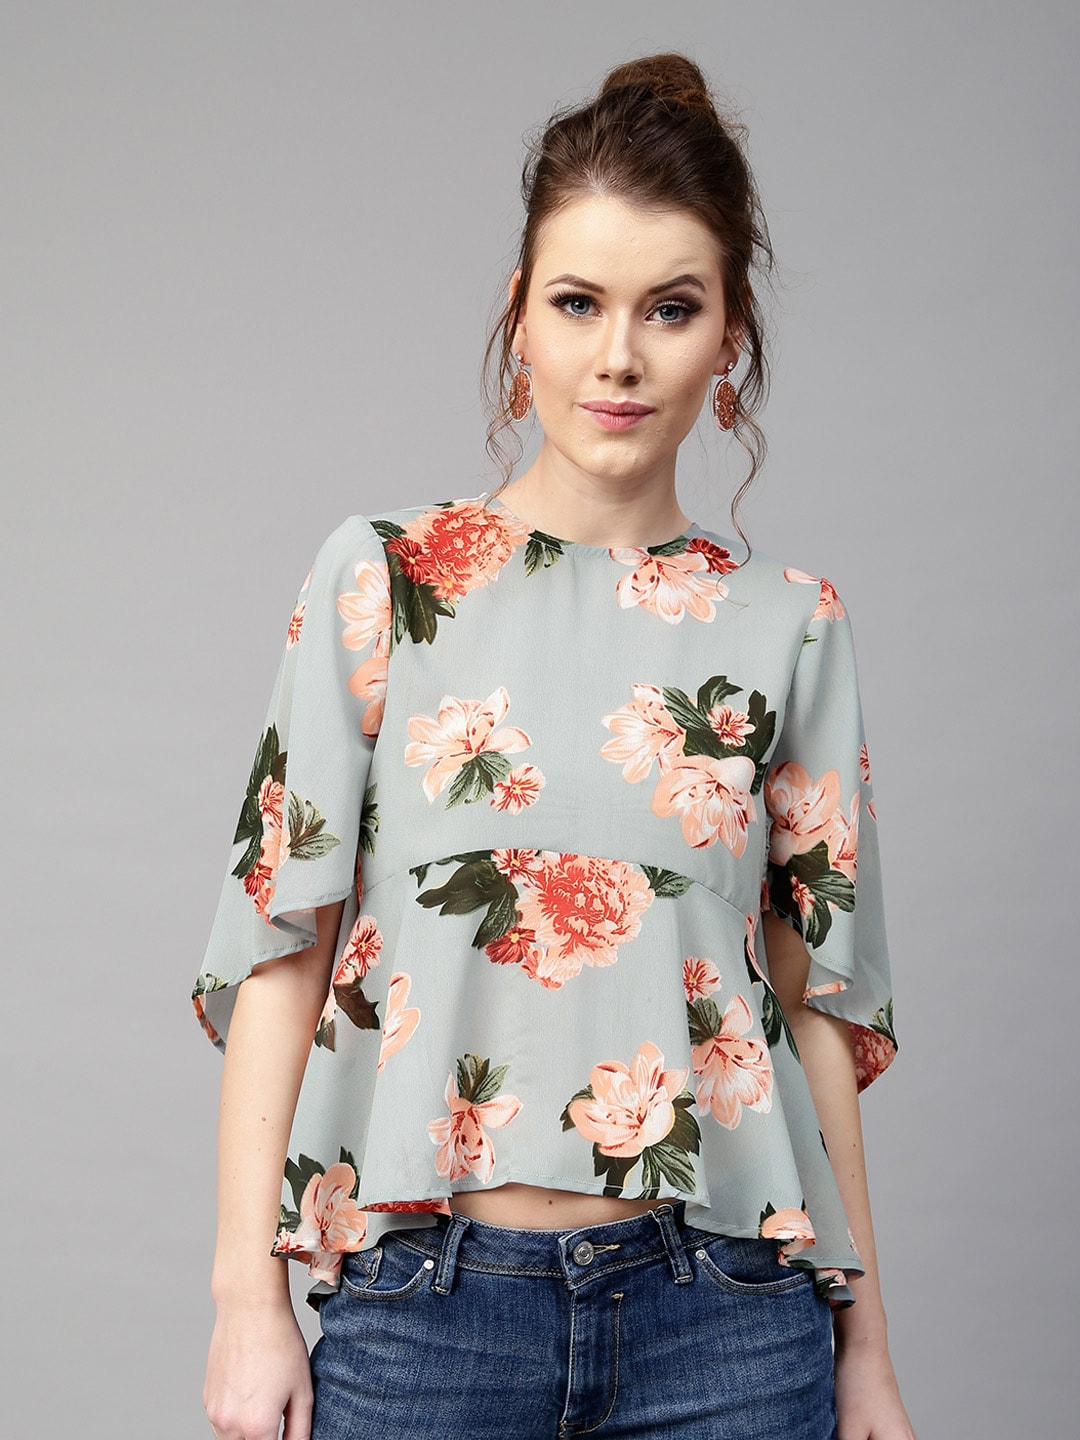 e9fe3668bd Floral Print Tops - Buy Floral Print Tops online in India